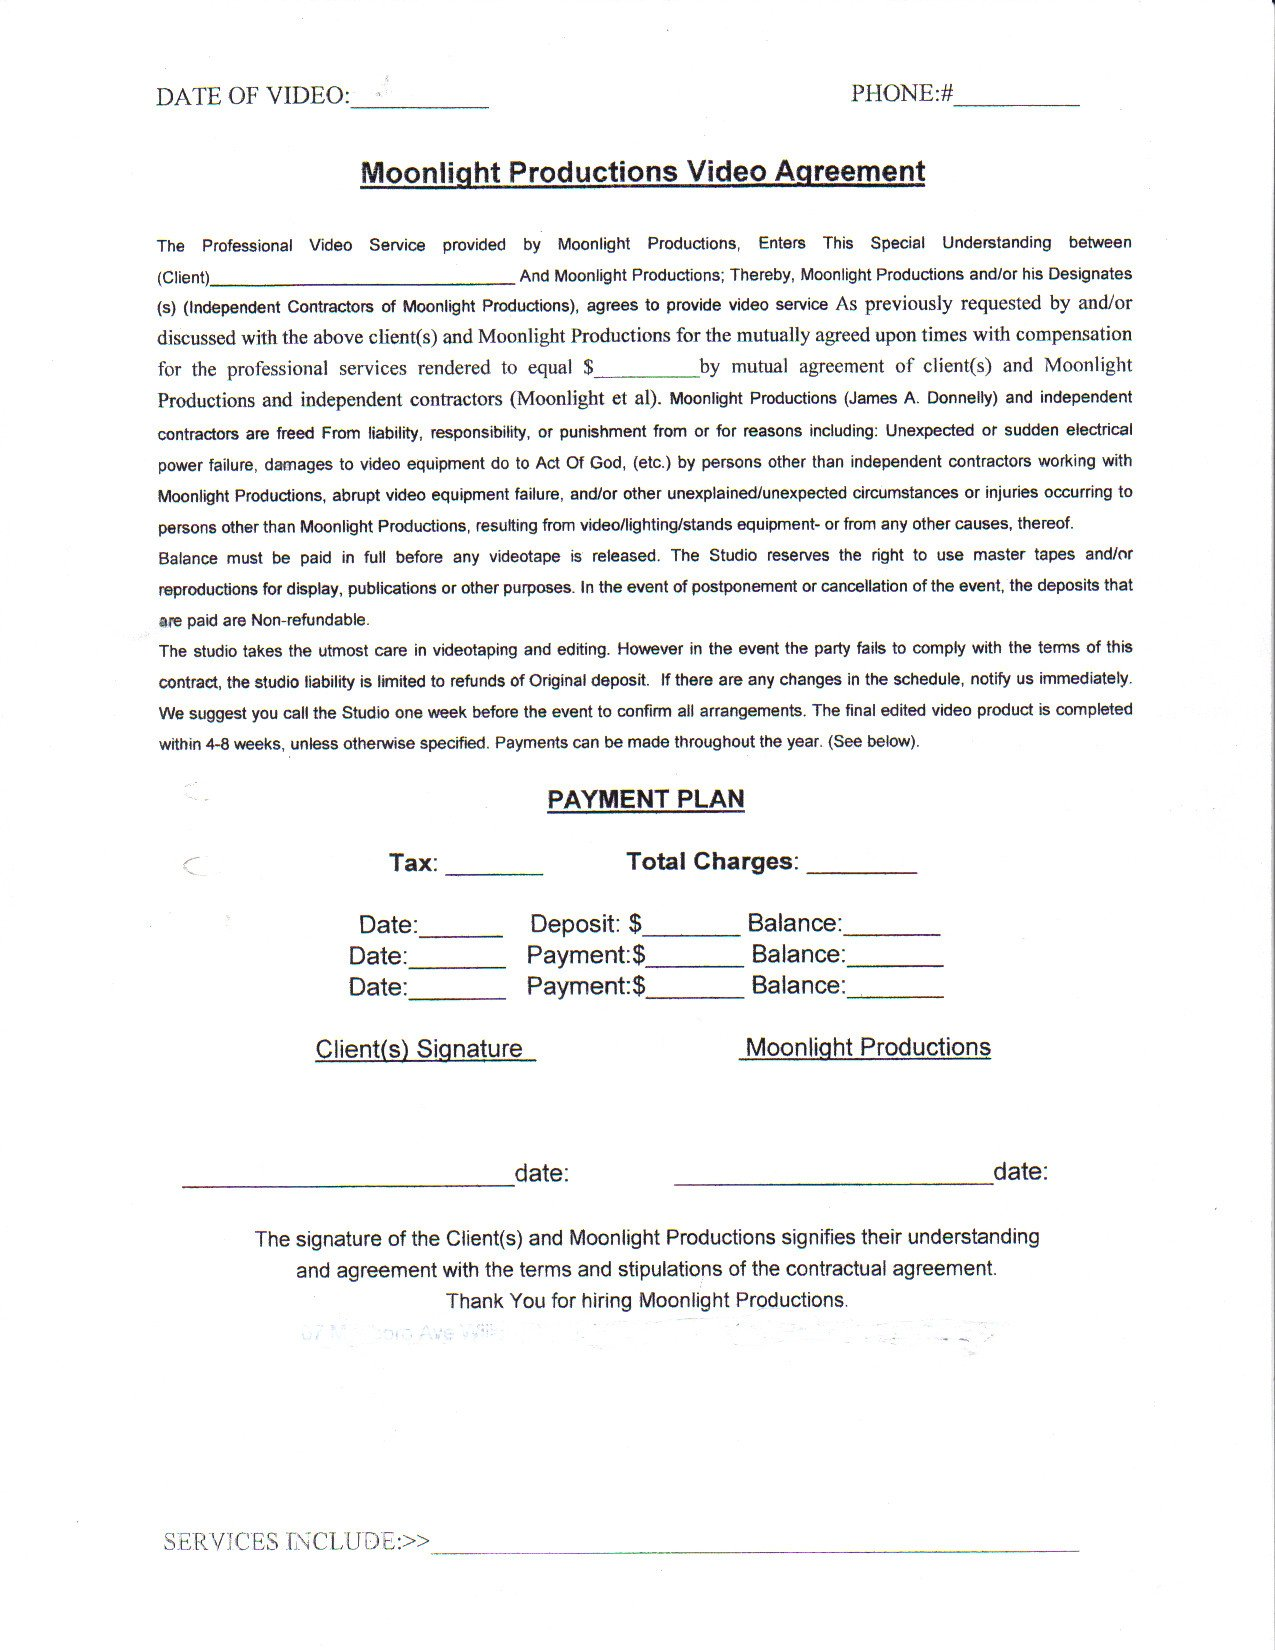 Wedding Videographer Contract Template Wedding Video Contract